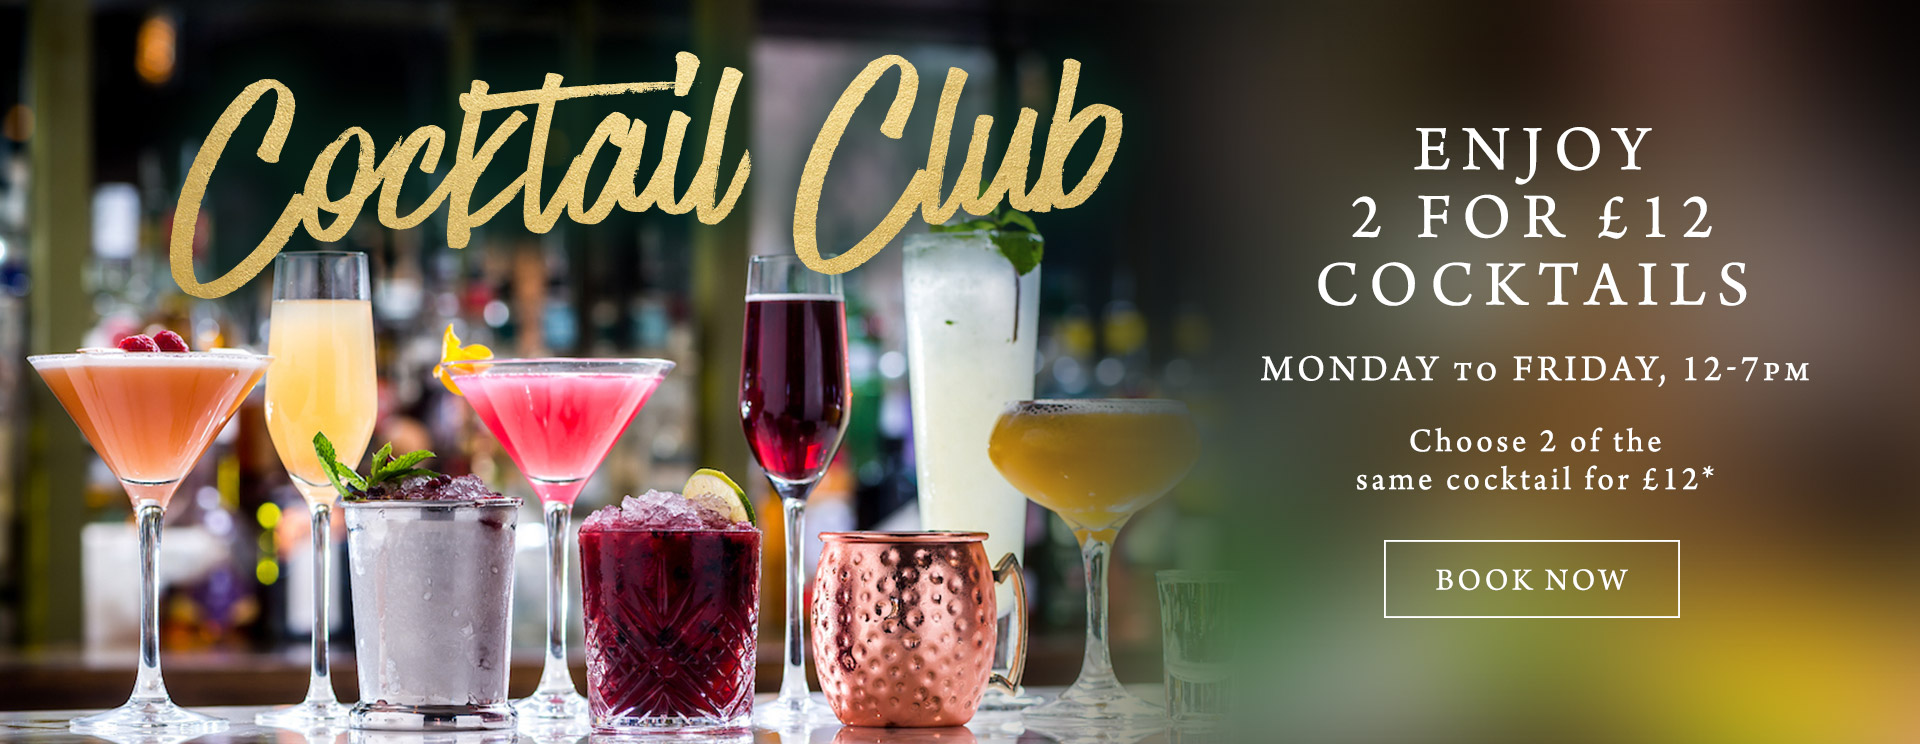 2 for £12 cocktails at The Old Forge